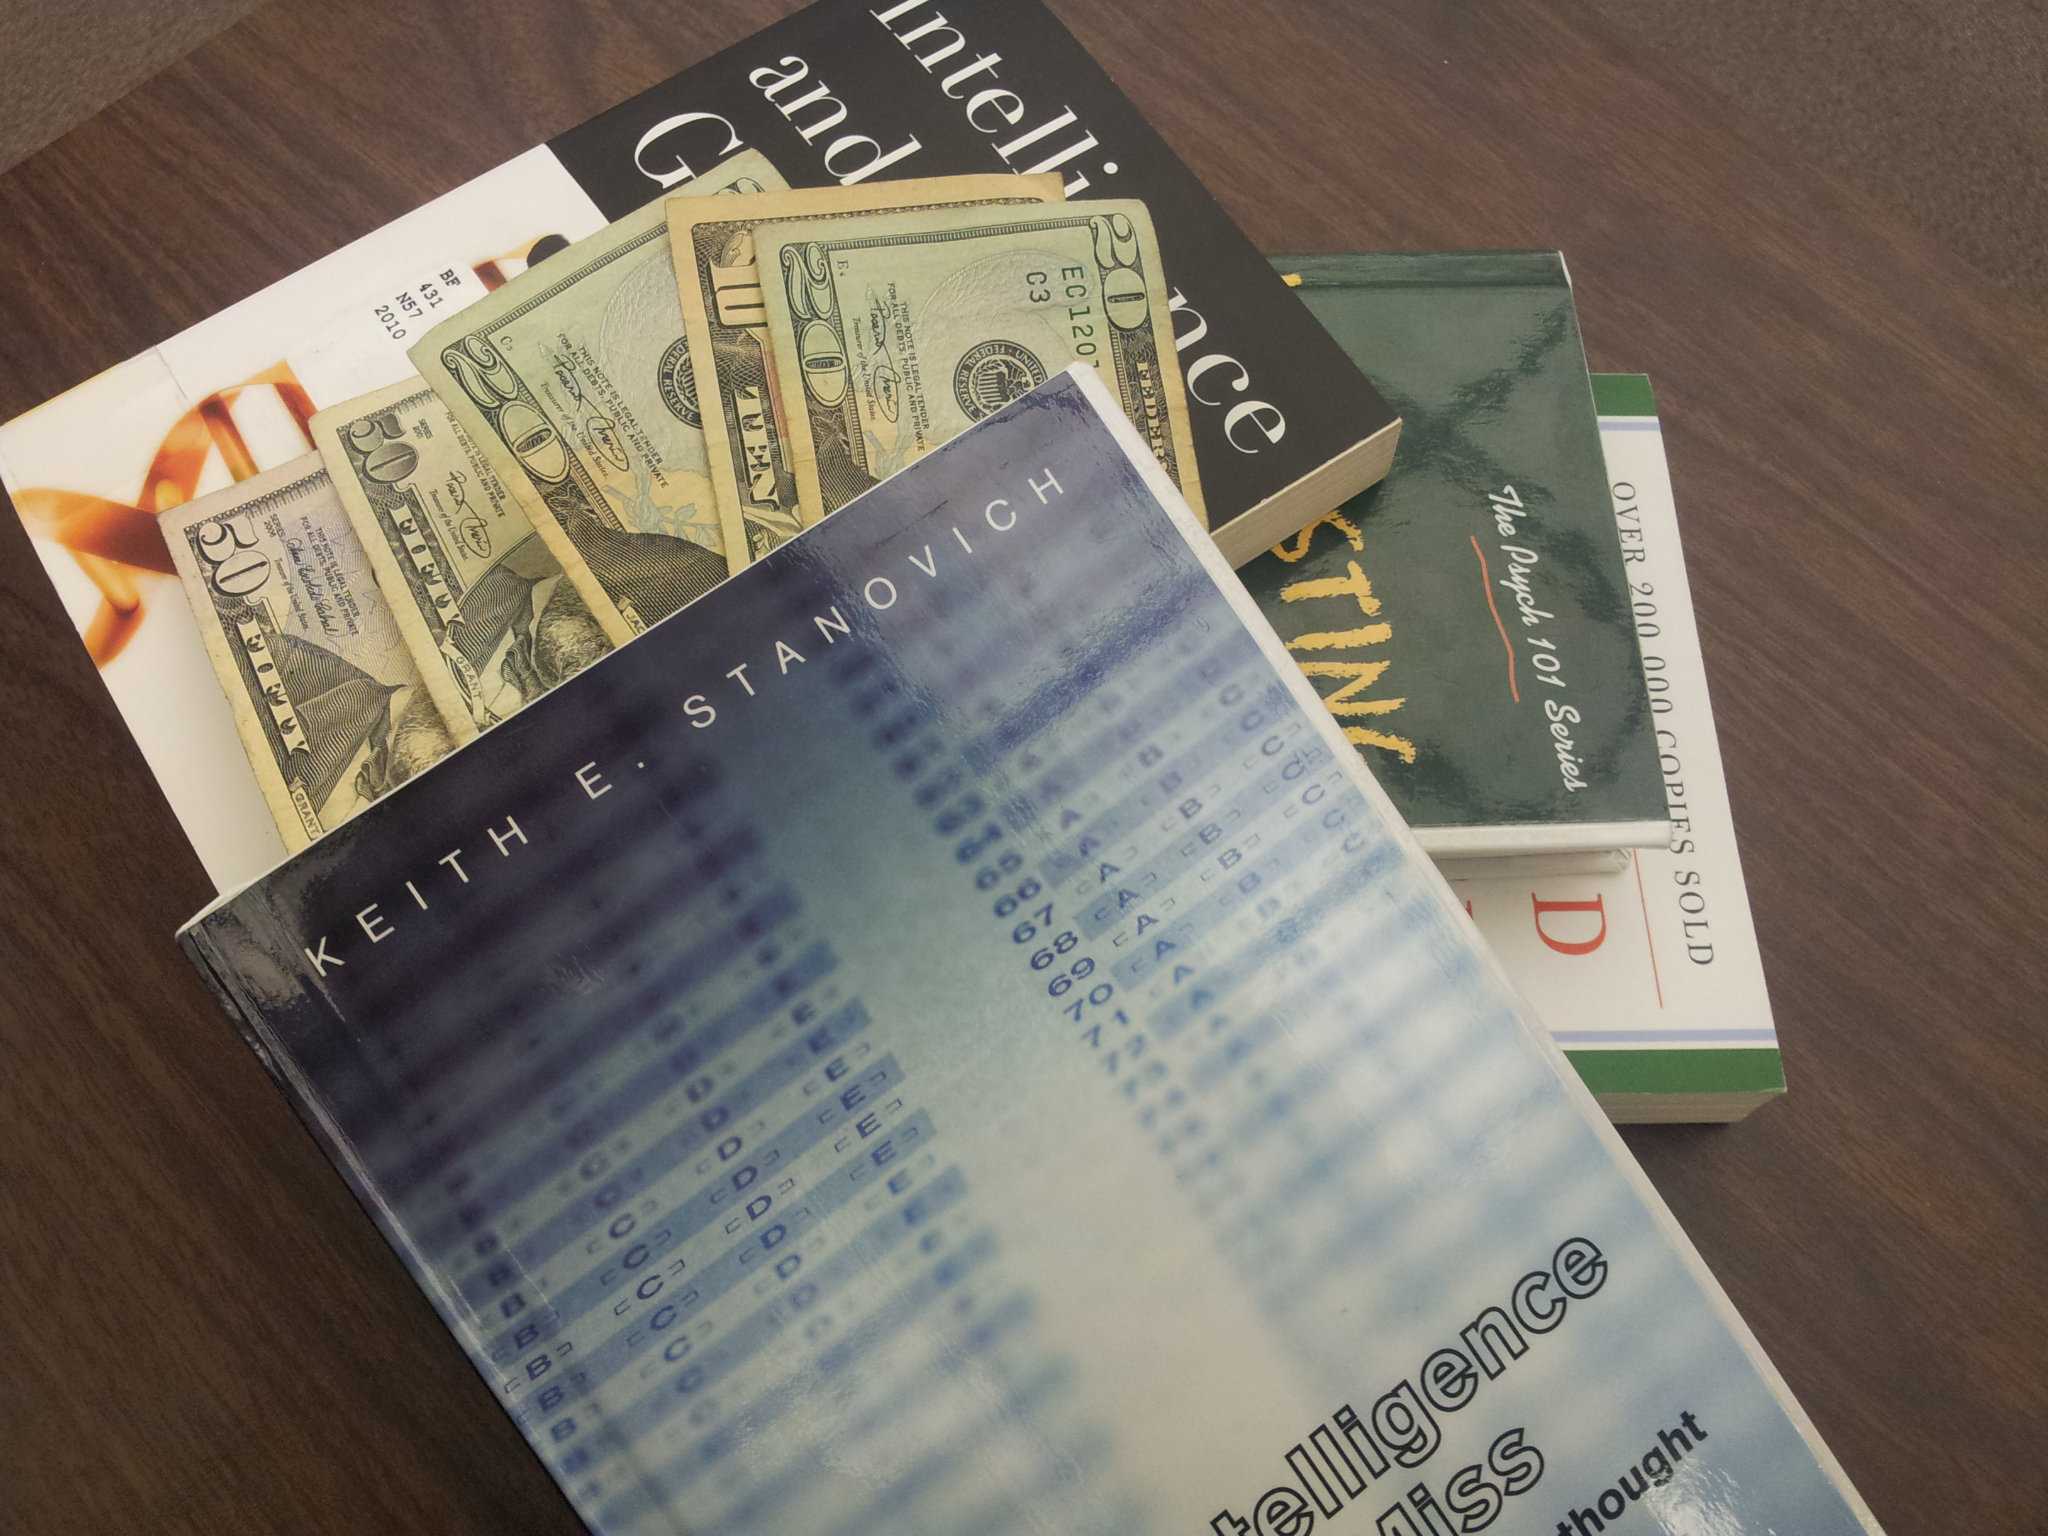 Save money on books the old fashioned way